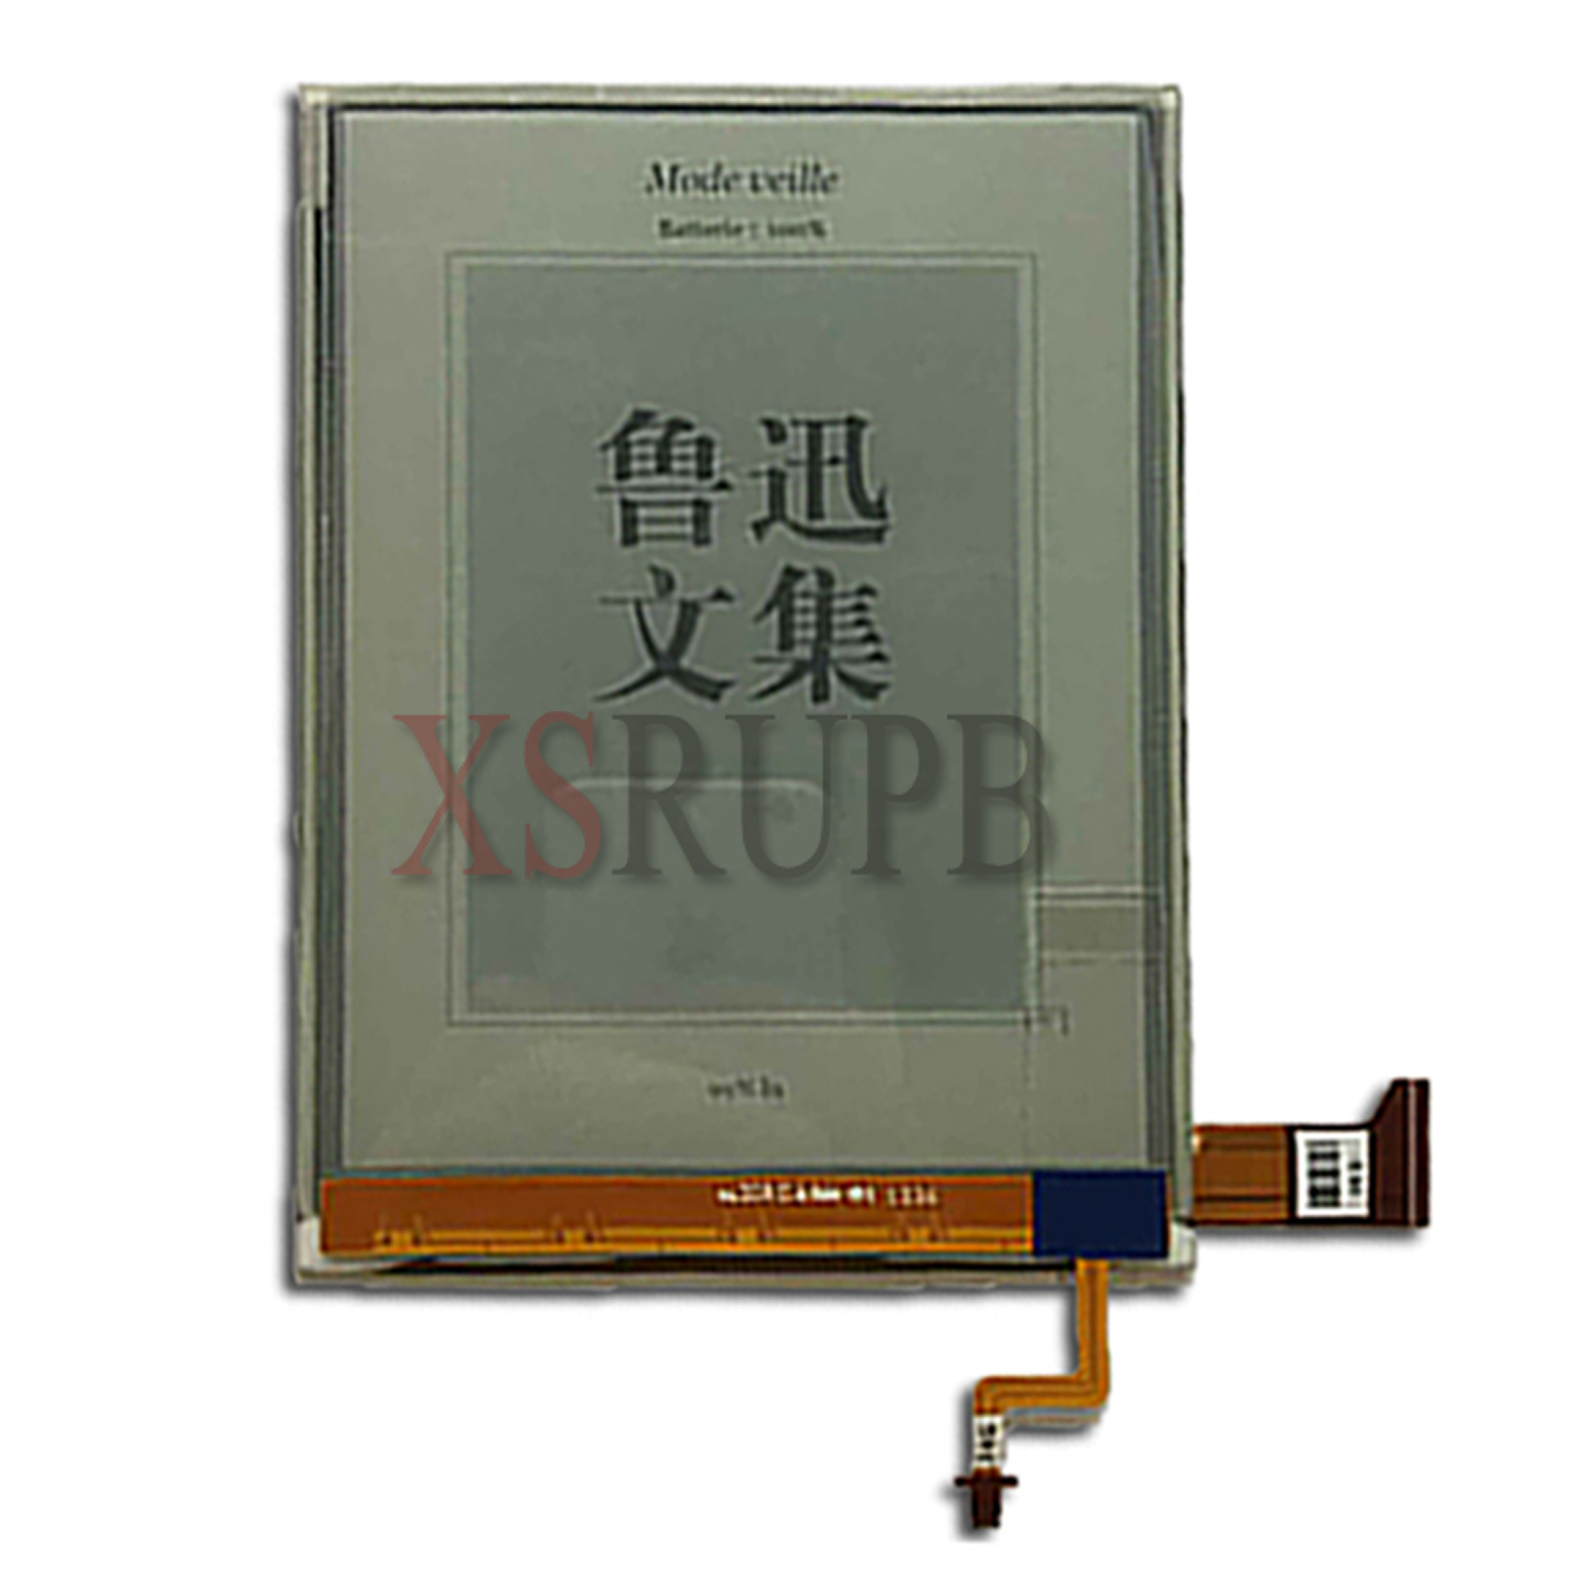 6 lcd display screen For onyx boox i63sml kopernik LCD Display Planel Screen E-book Ebook Reader Replacement 6inch lcd display screen for digma e626 special edition lcd display screen e book ebook reader replacement